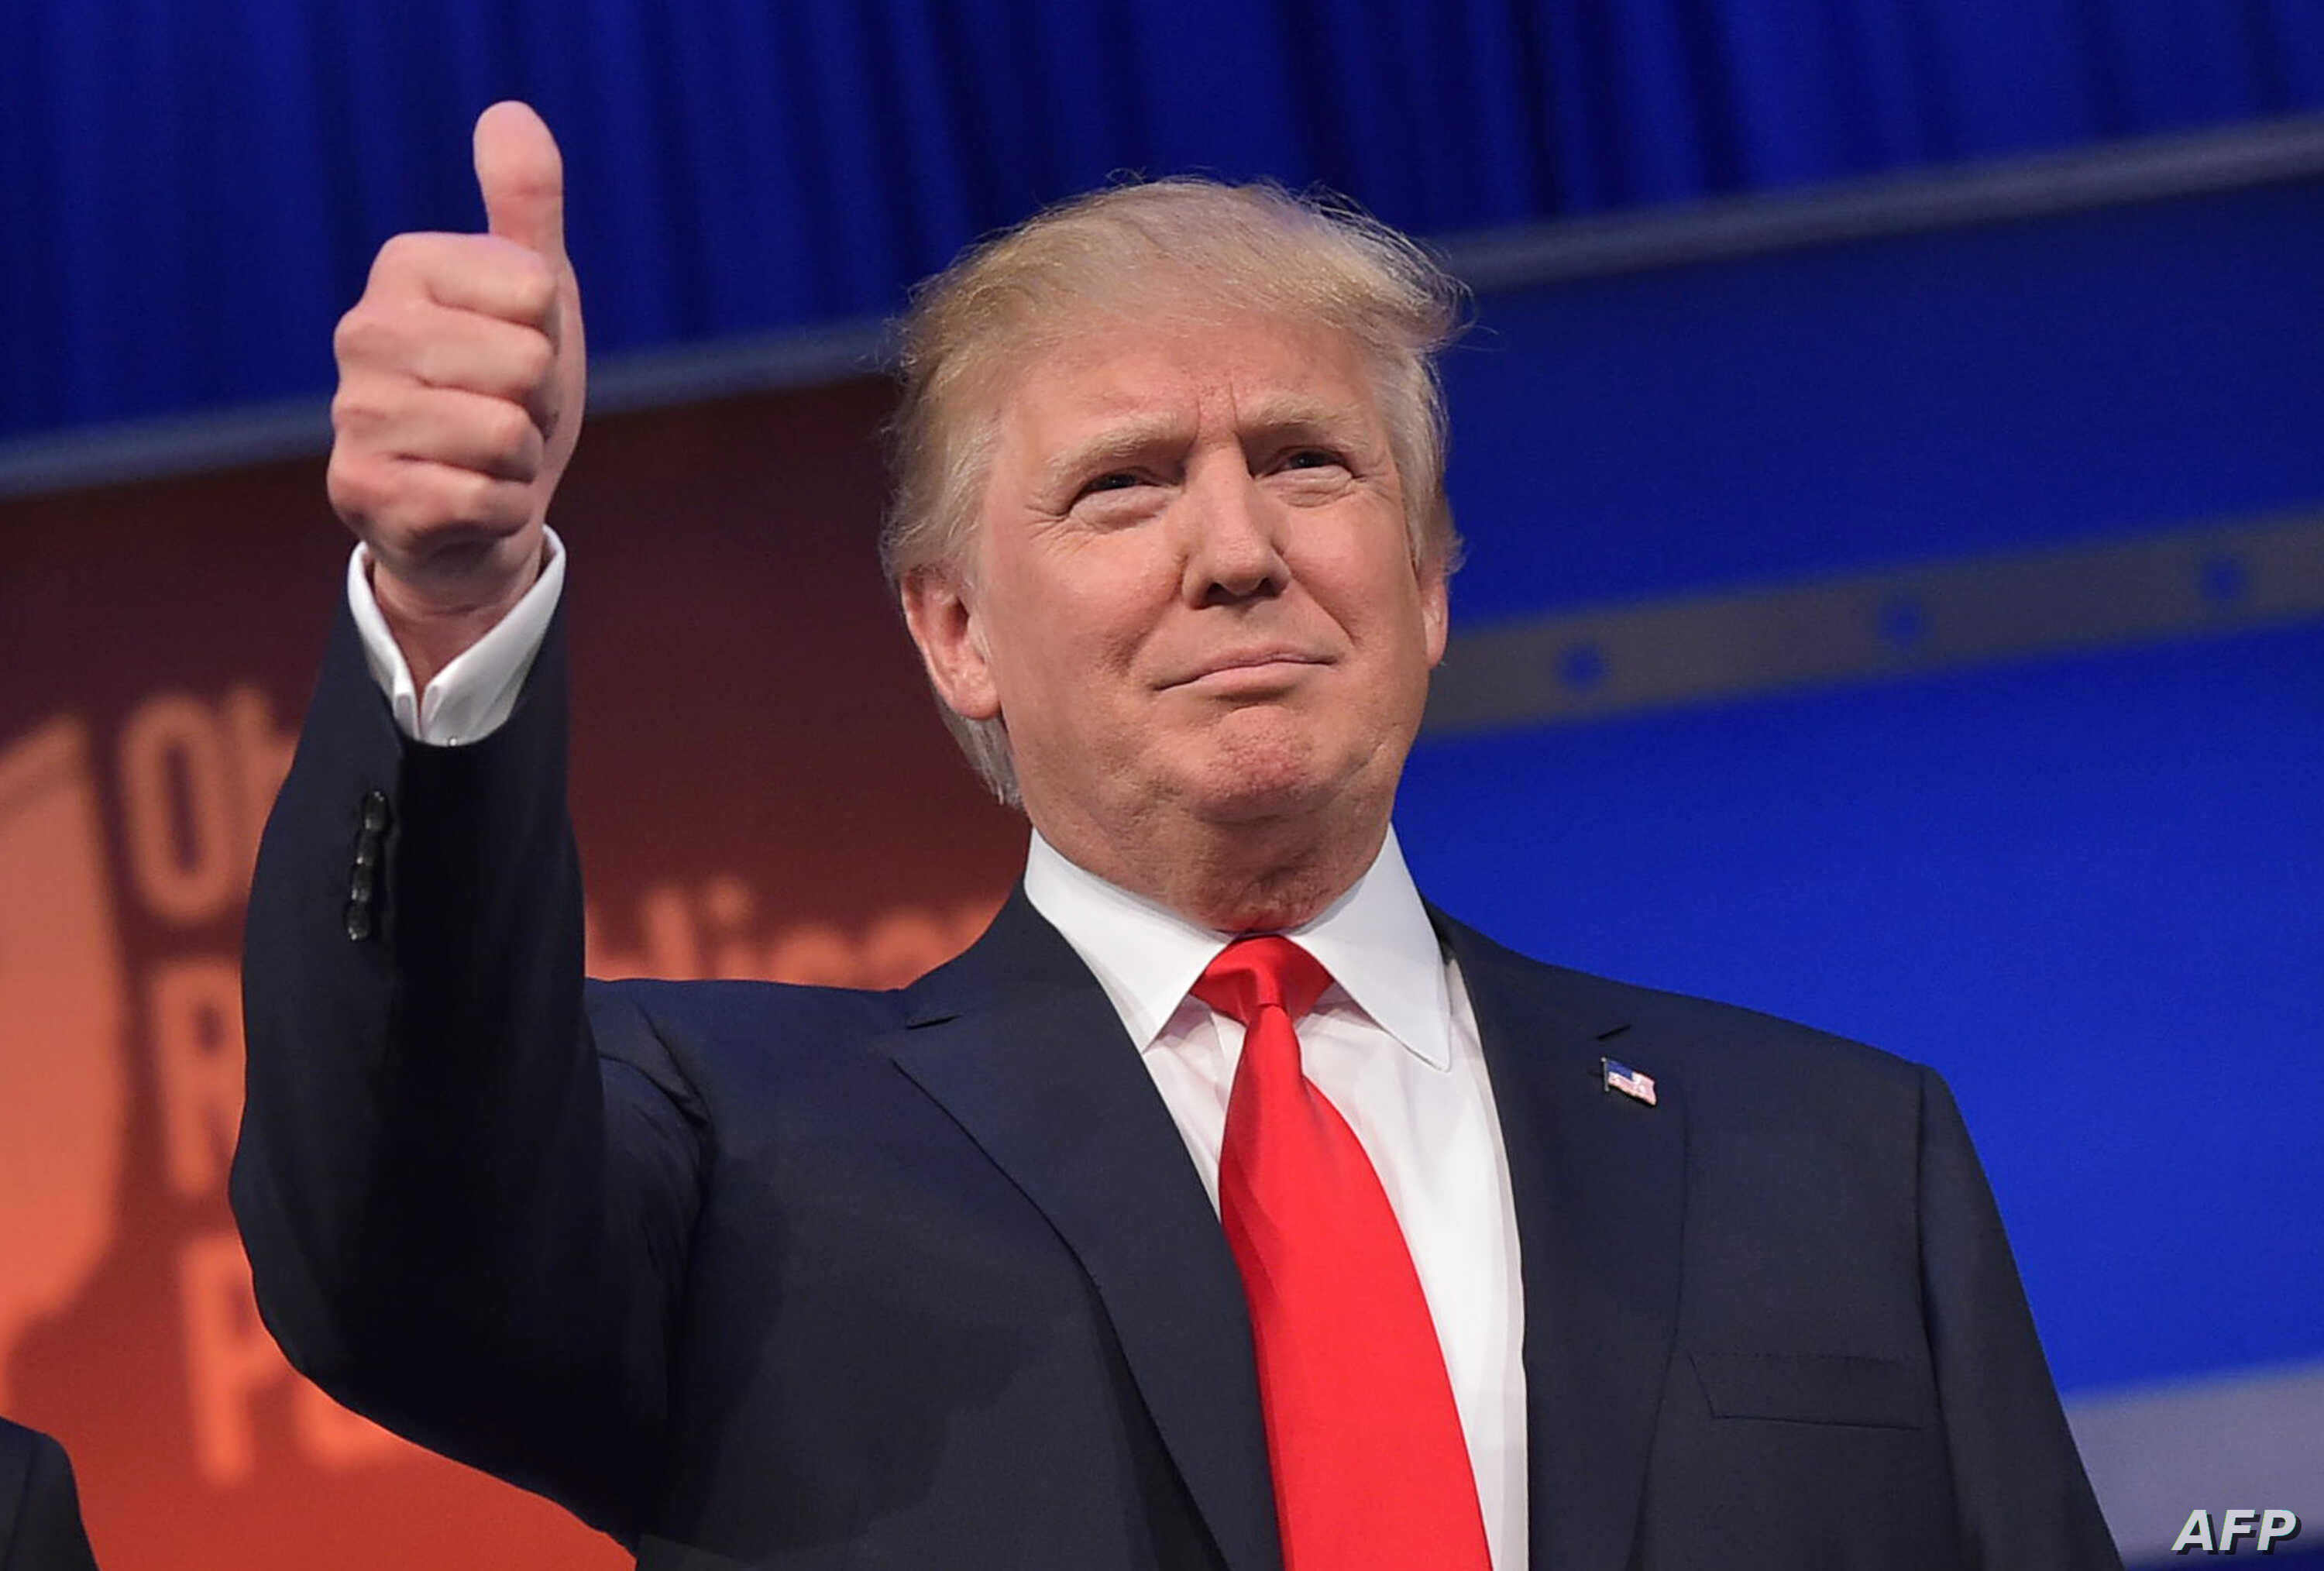 Real estate tycoon Donald Trump flashes the thumbs-up as he arrives on stage for the start of the prime time Republican presidential debate on Aug. 6, 2015 at the Quicken Loans Arena in Cleveland, Ohio.